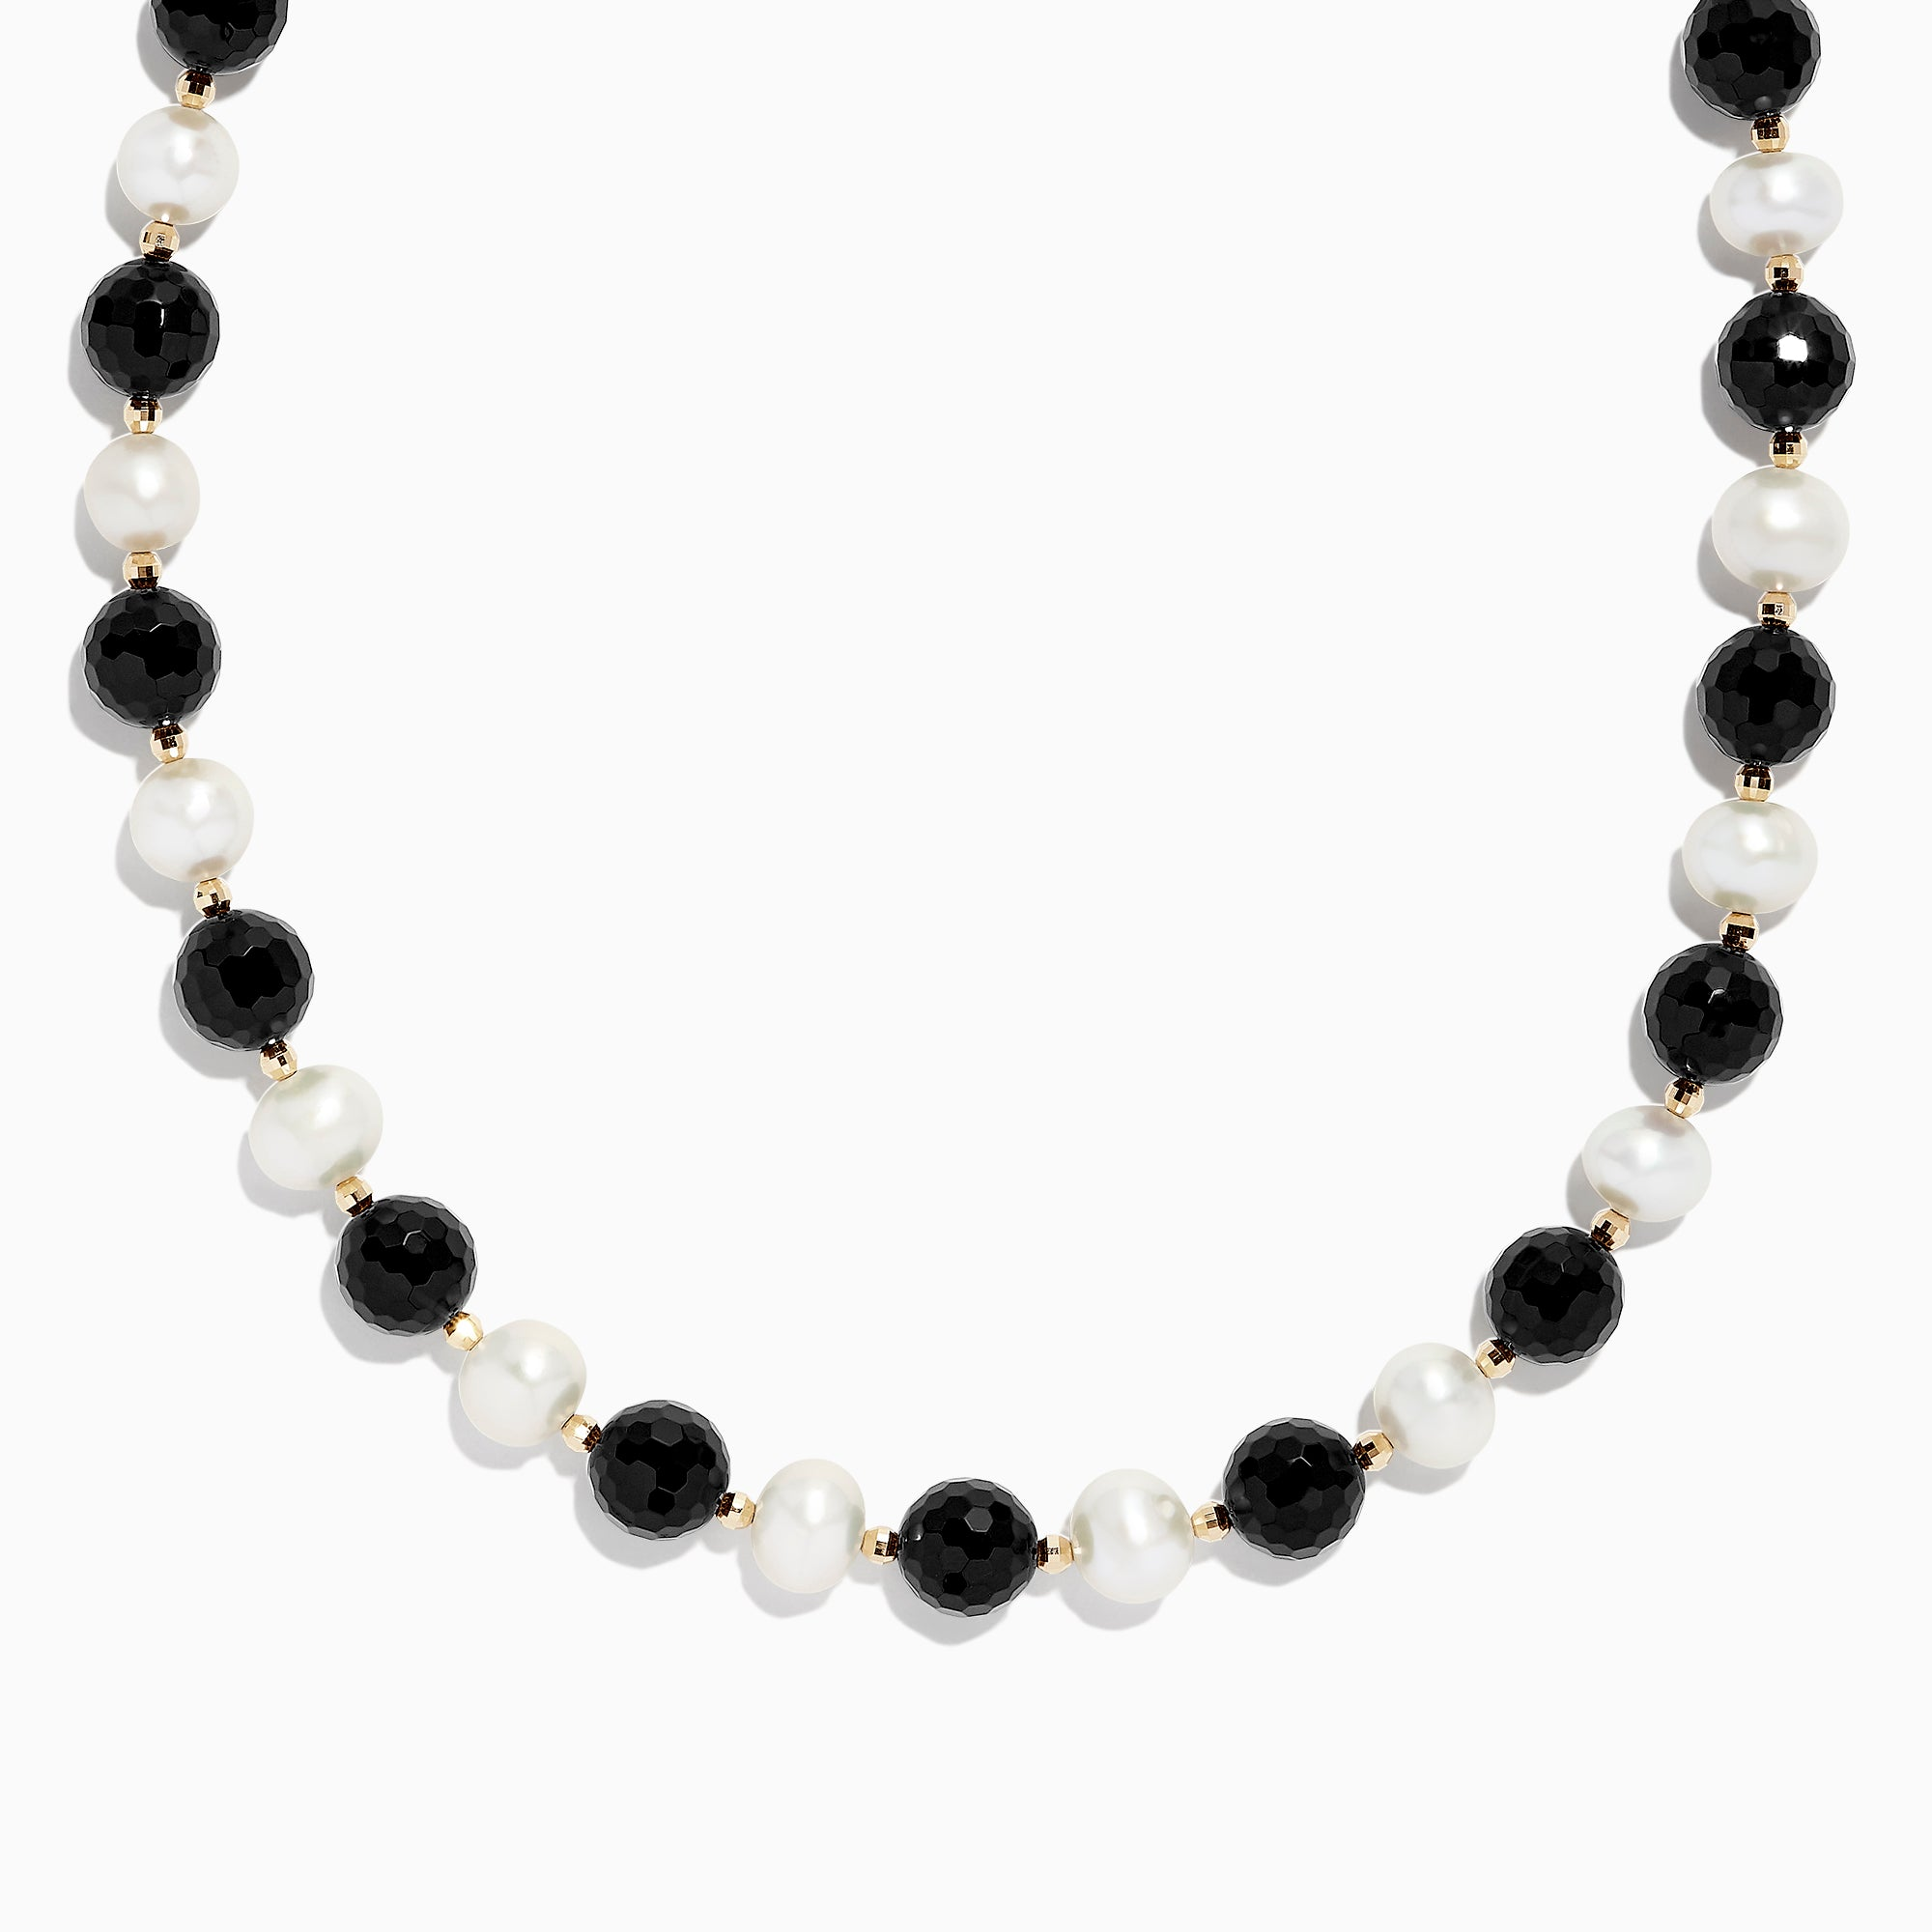 Effy 14K Yellow Gold Cultured Fresh Water Pearl and Onyx Necklace